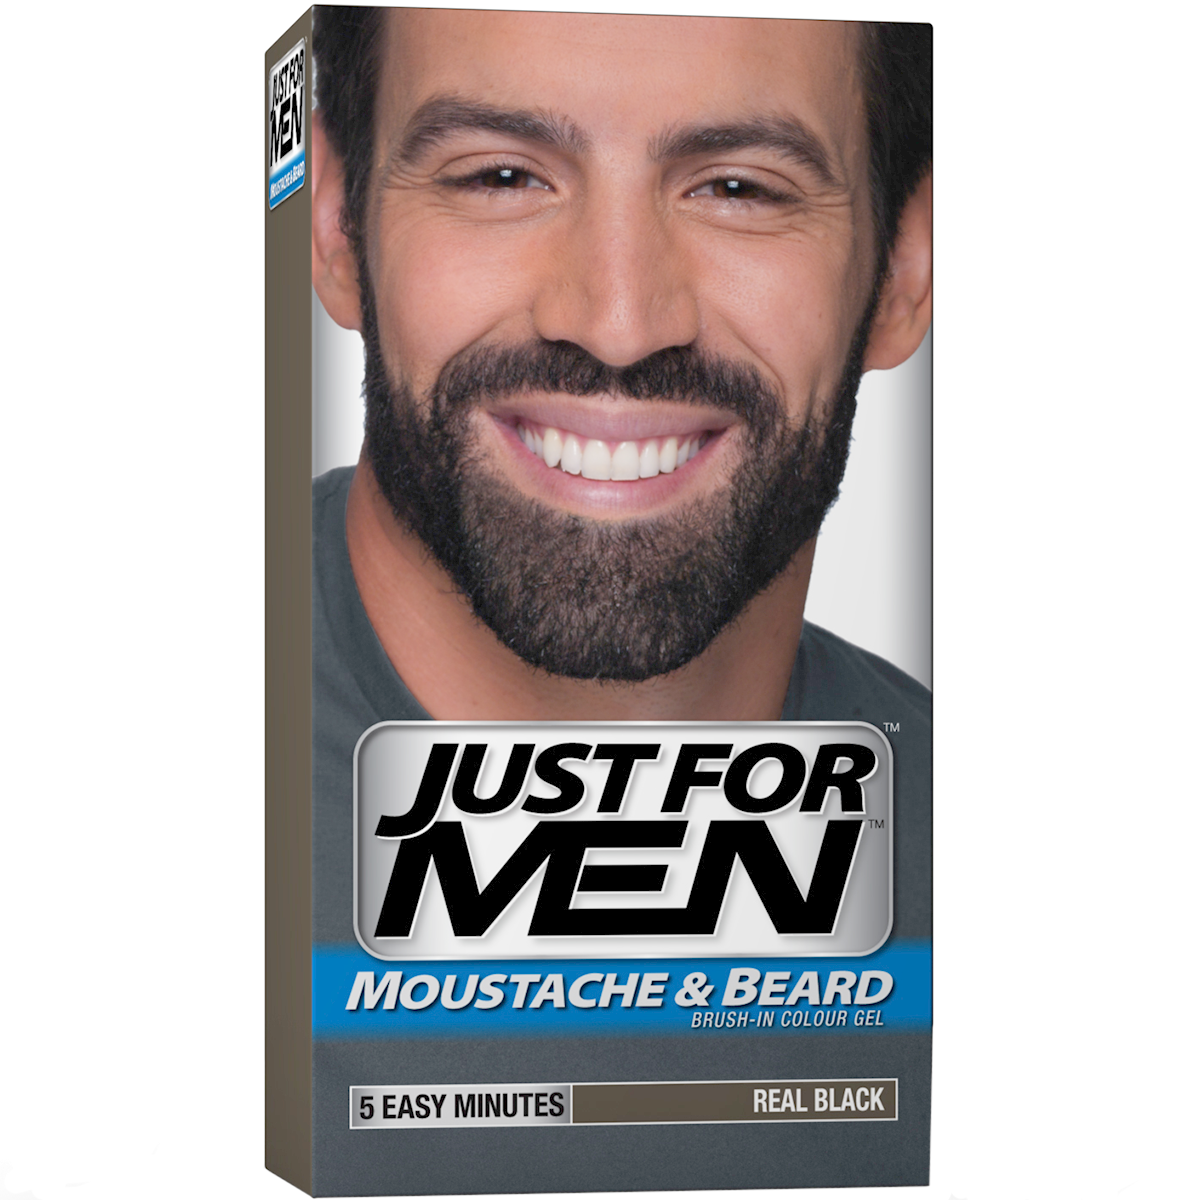 Just For Men Original Formula Just For Men Brush In Colour Gel Moustache, Beard & Sideburn